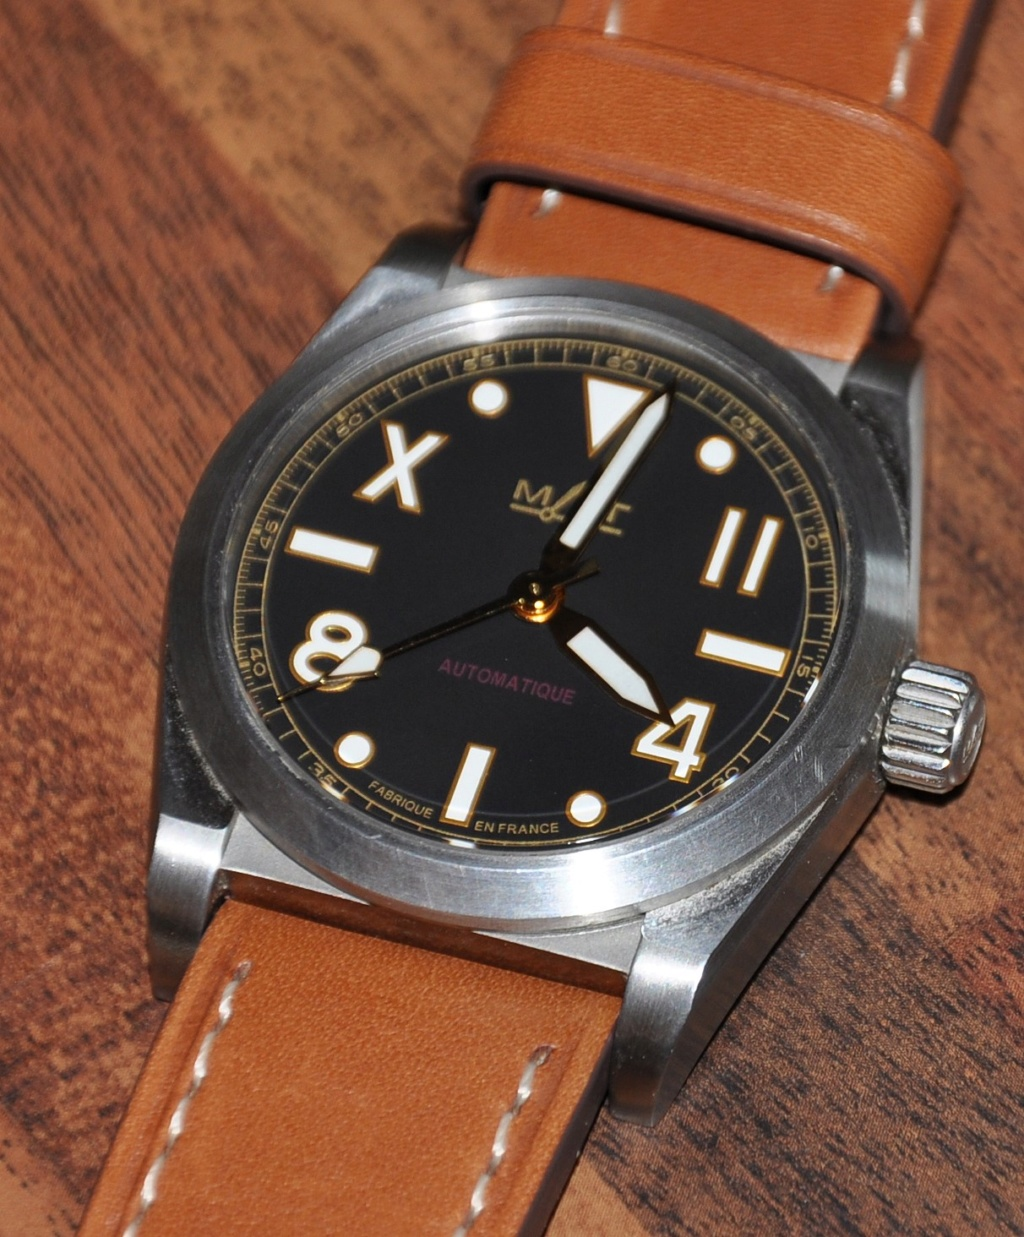 Montres MATWATCHES - Mer Air Terre - Page 38 Dsc_1610